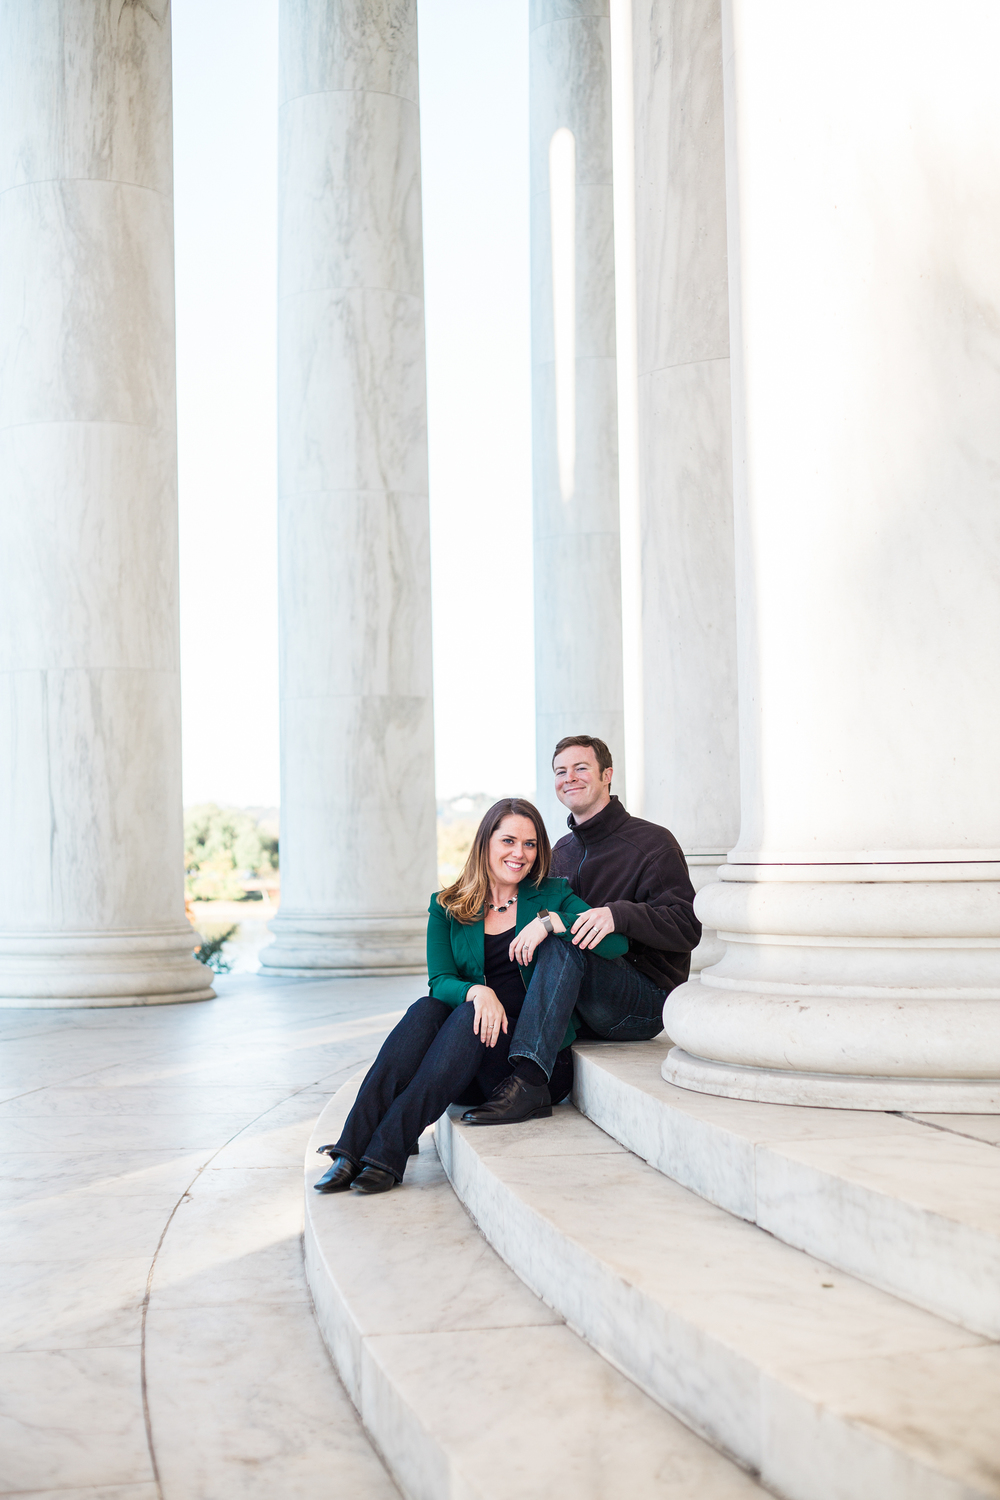 FLYTOGRAPHER Vacation Photographer in Washington - Hannah